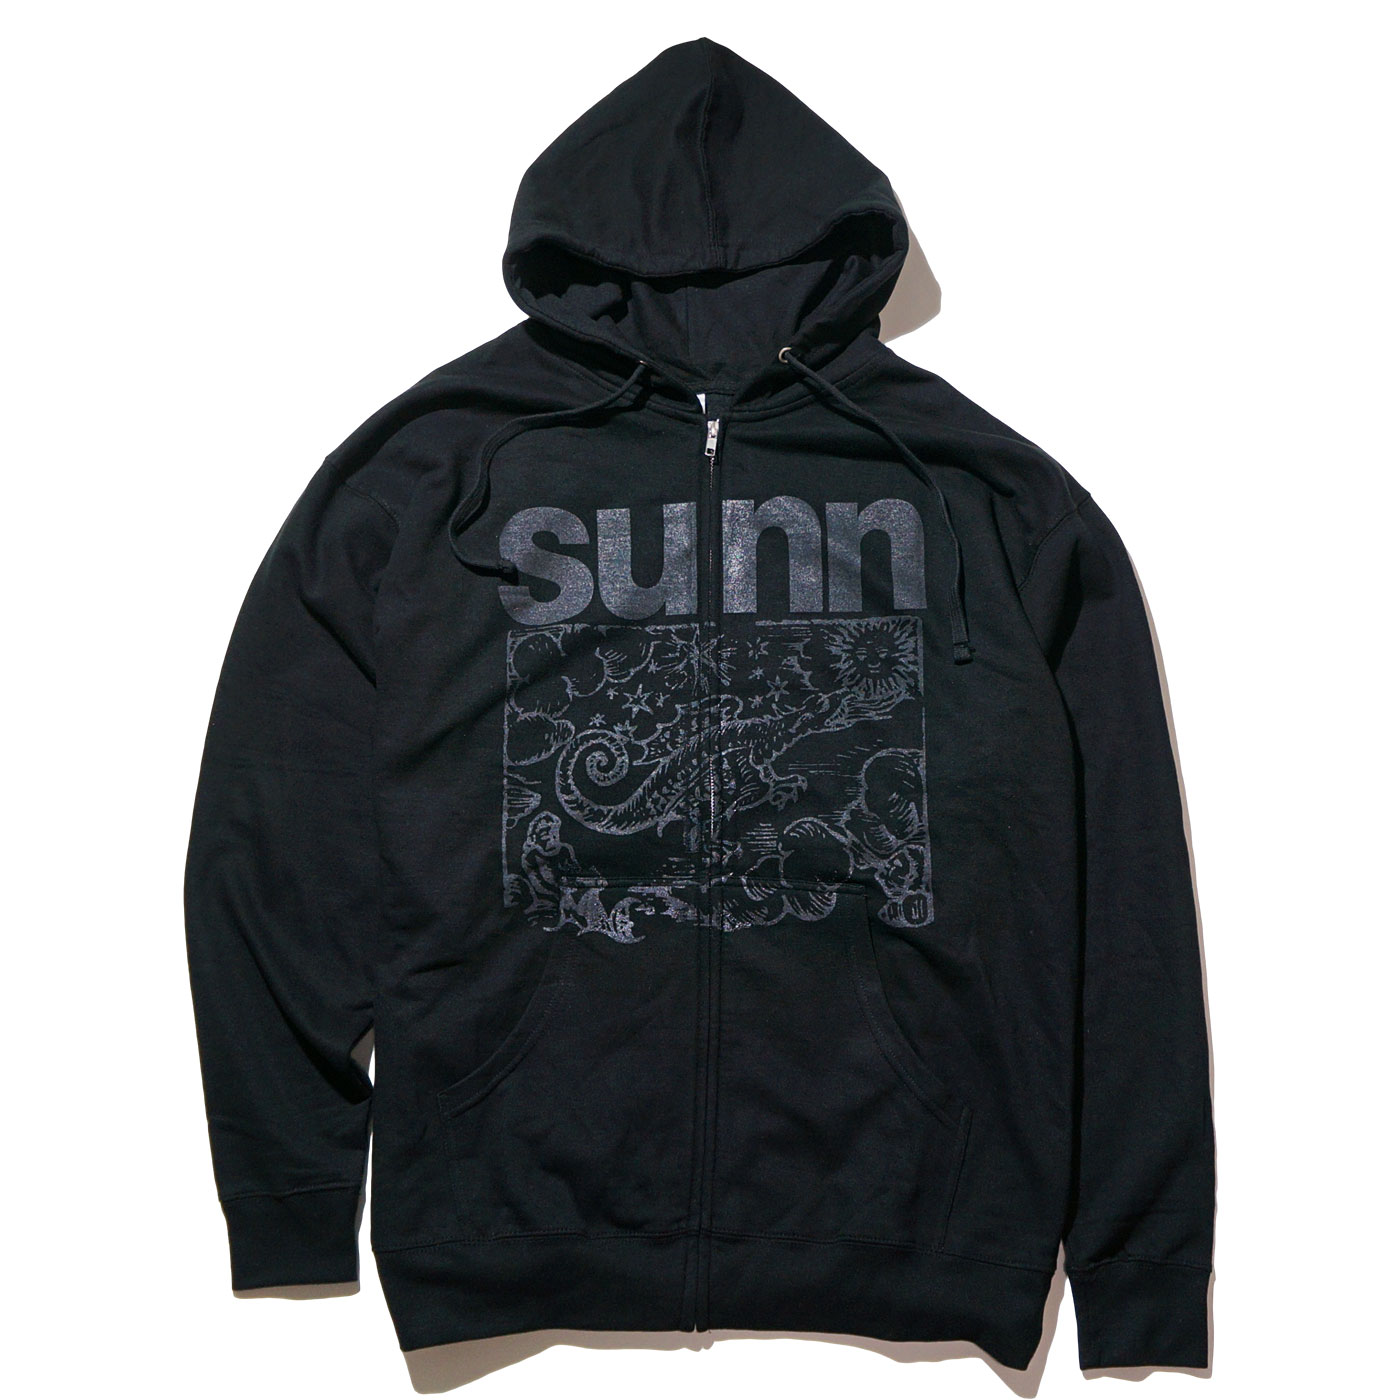 SUNN O))) ジップアップパーカー Flight of the Behemoth ZIP UP Hoodie